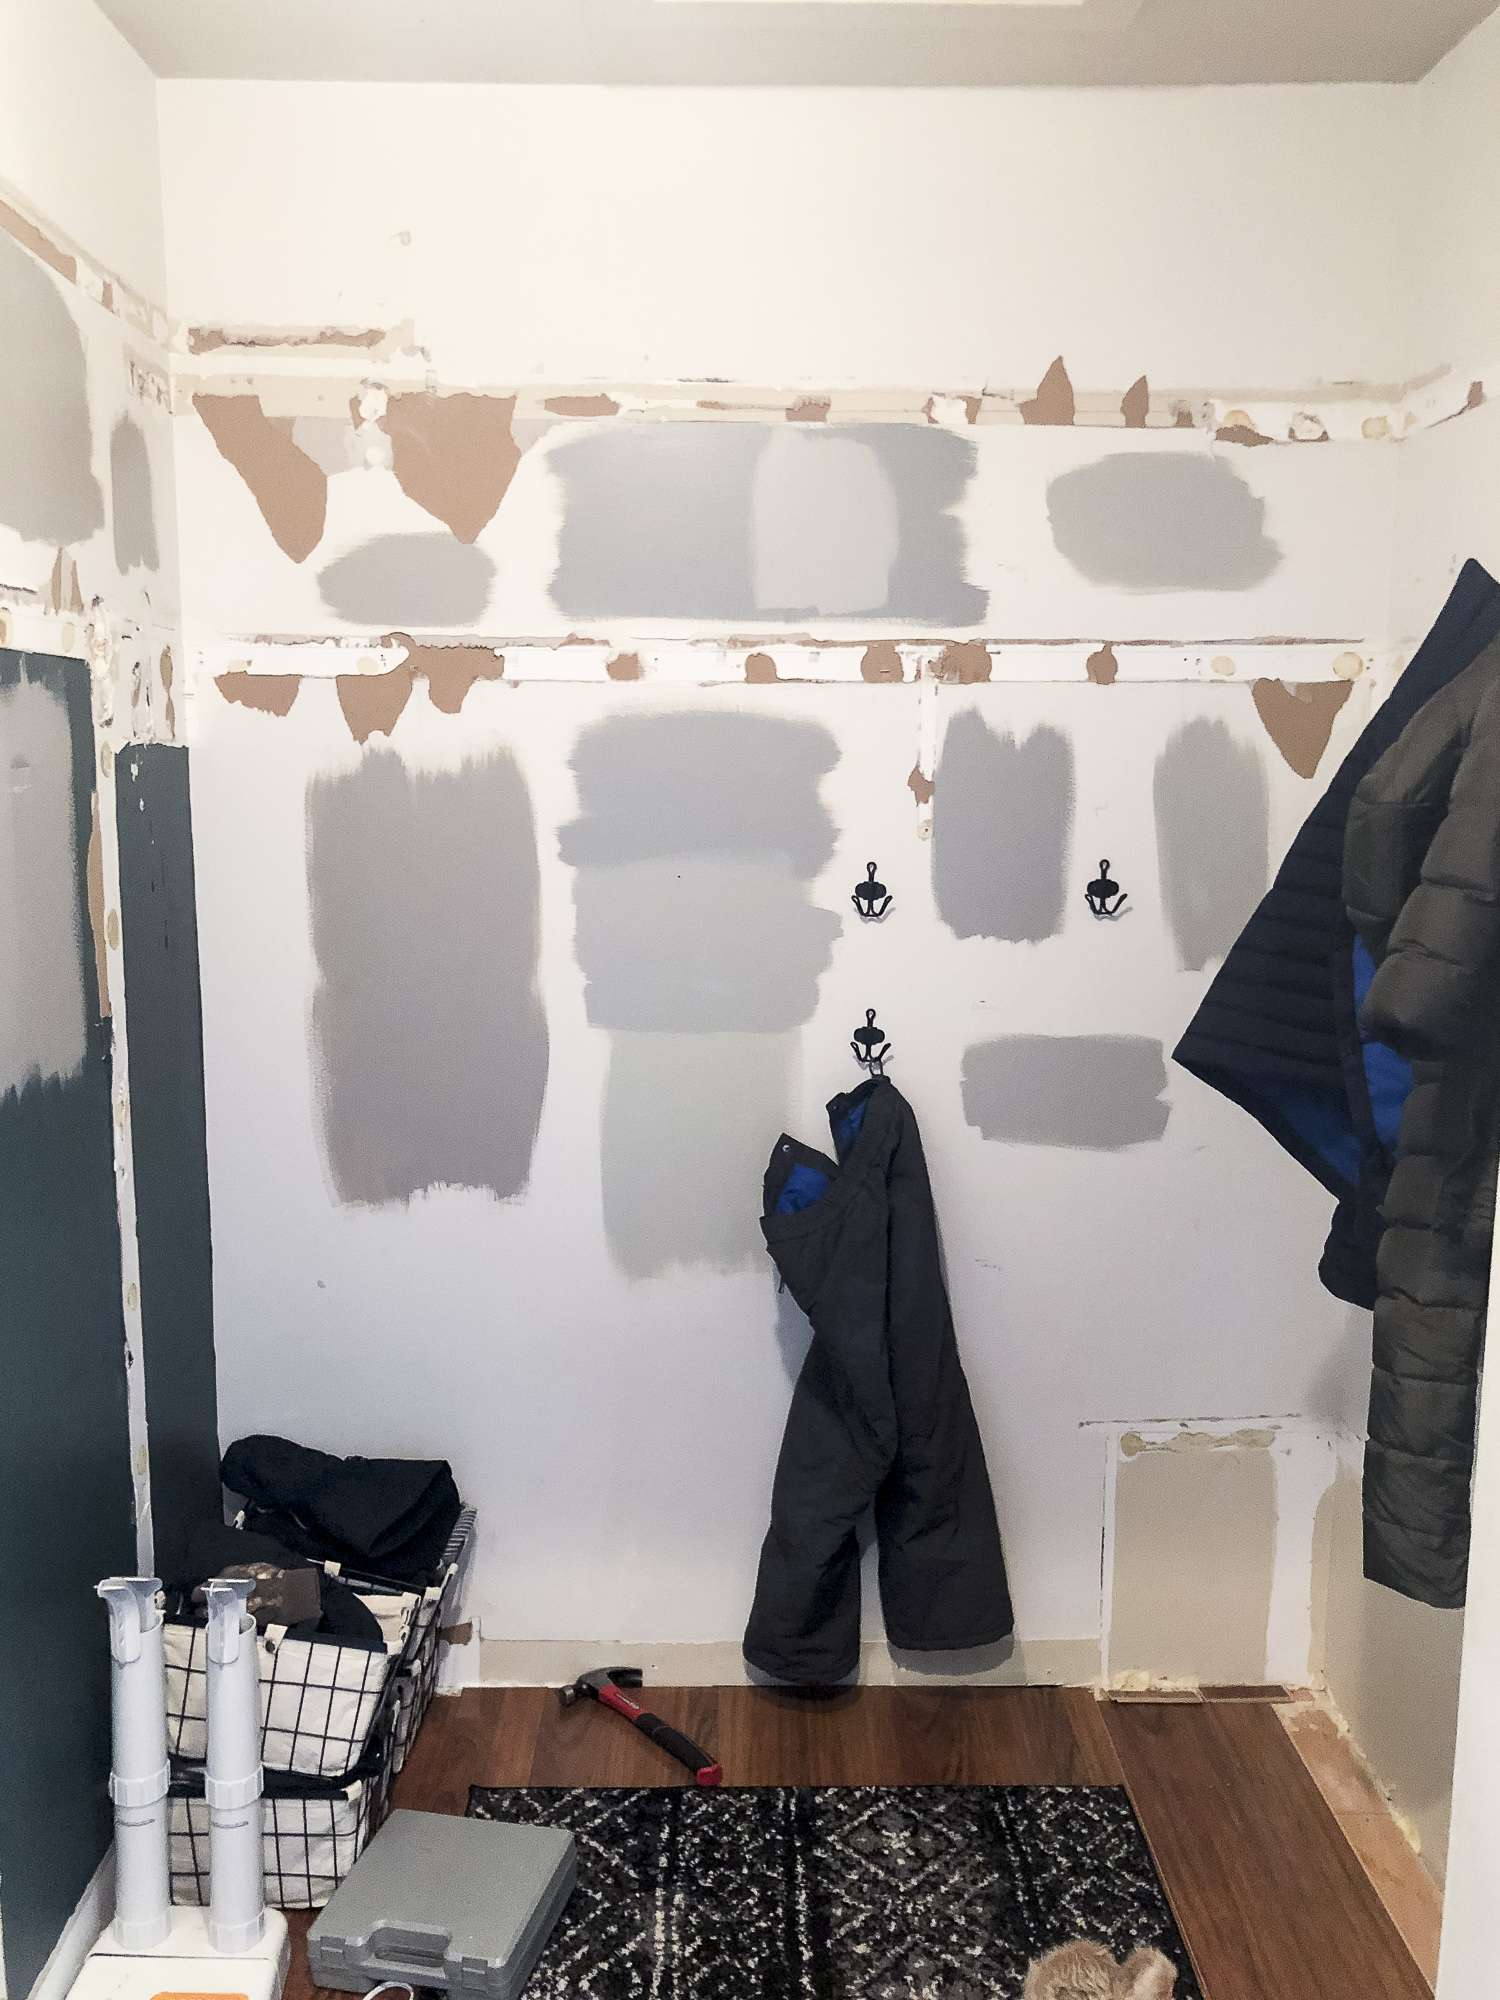 Choosing paint colors in a mudroom design.